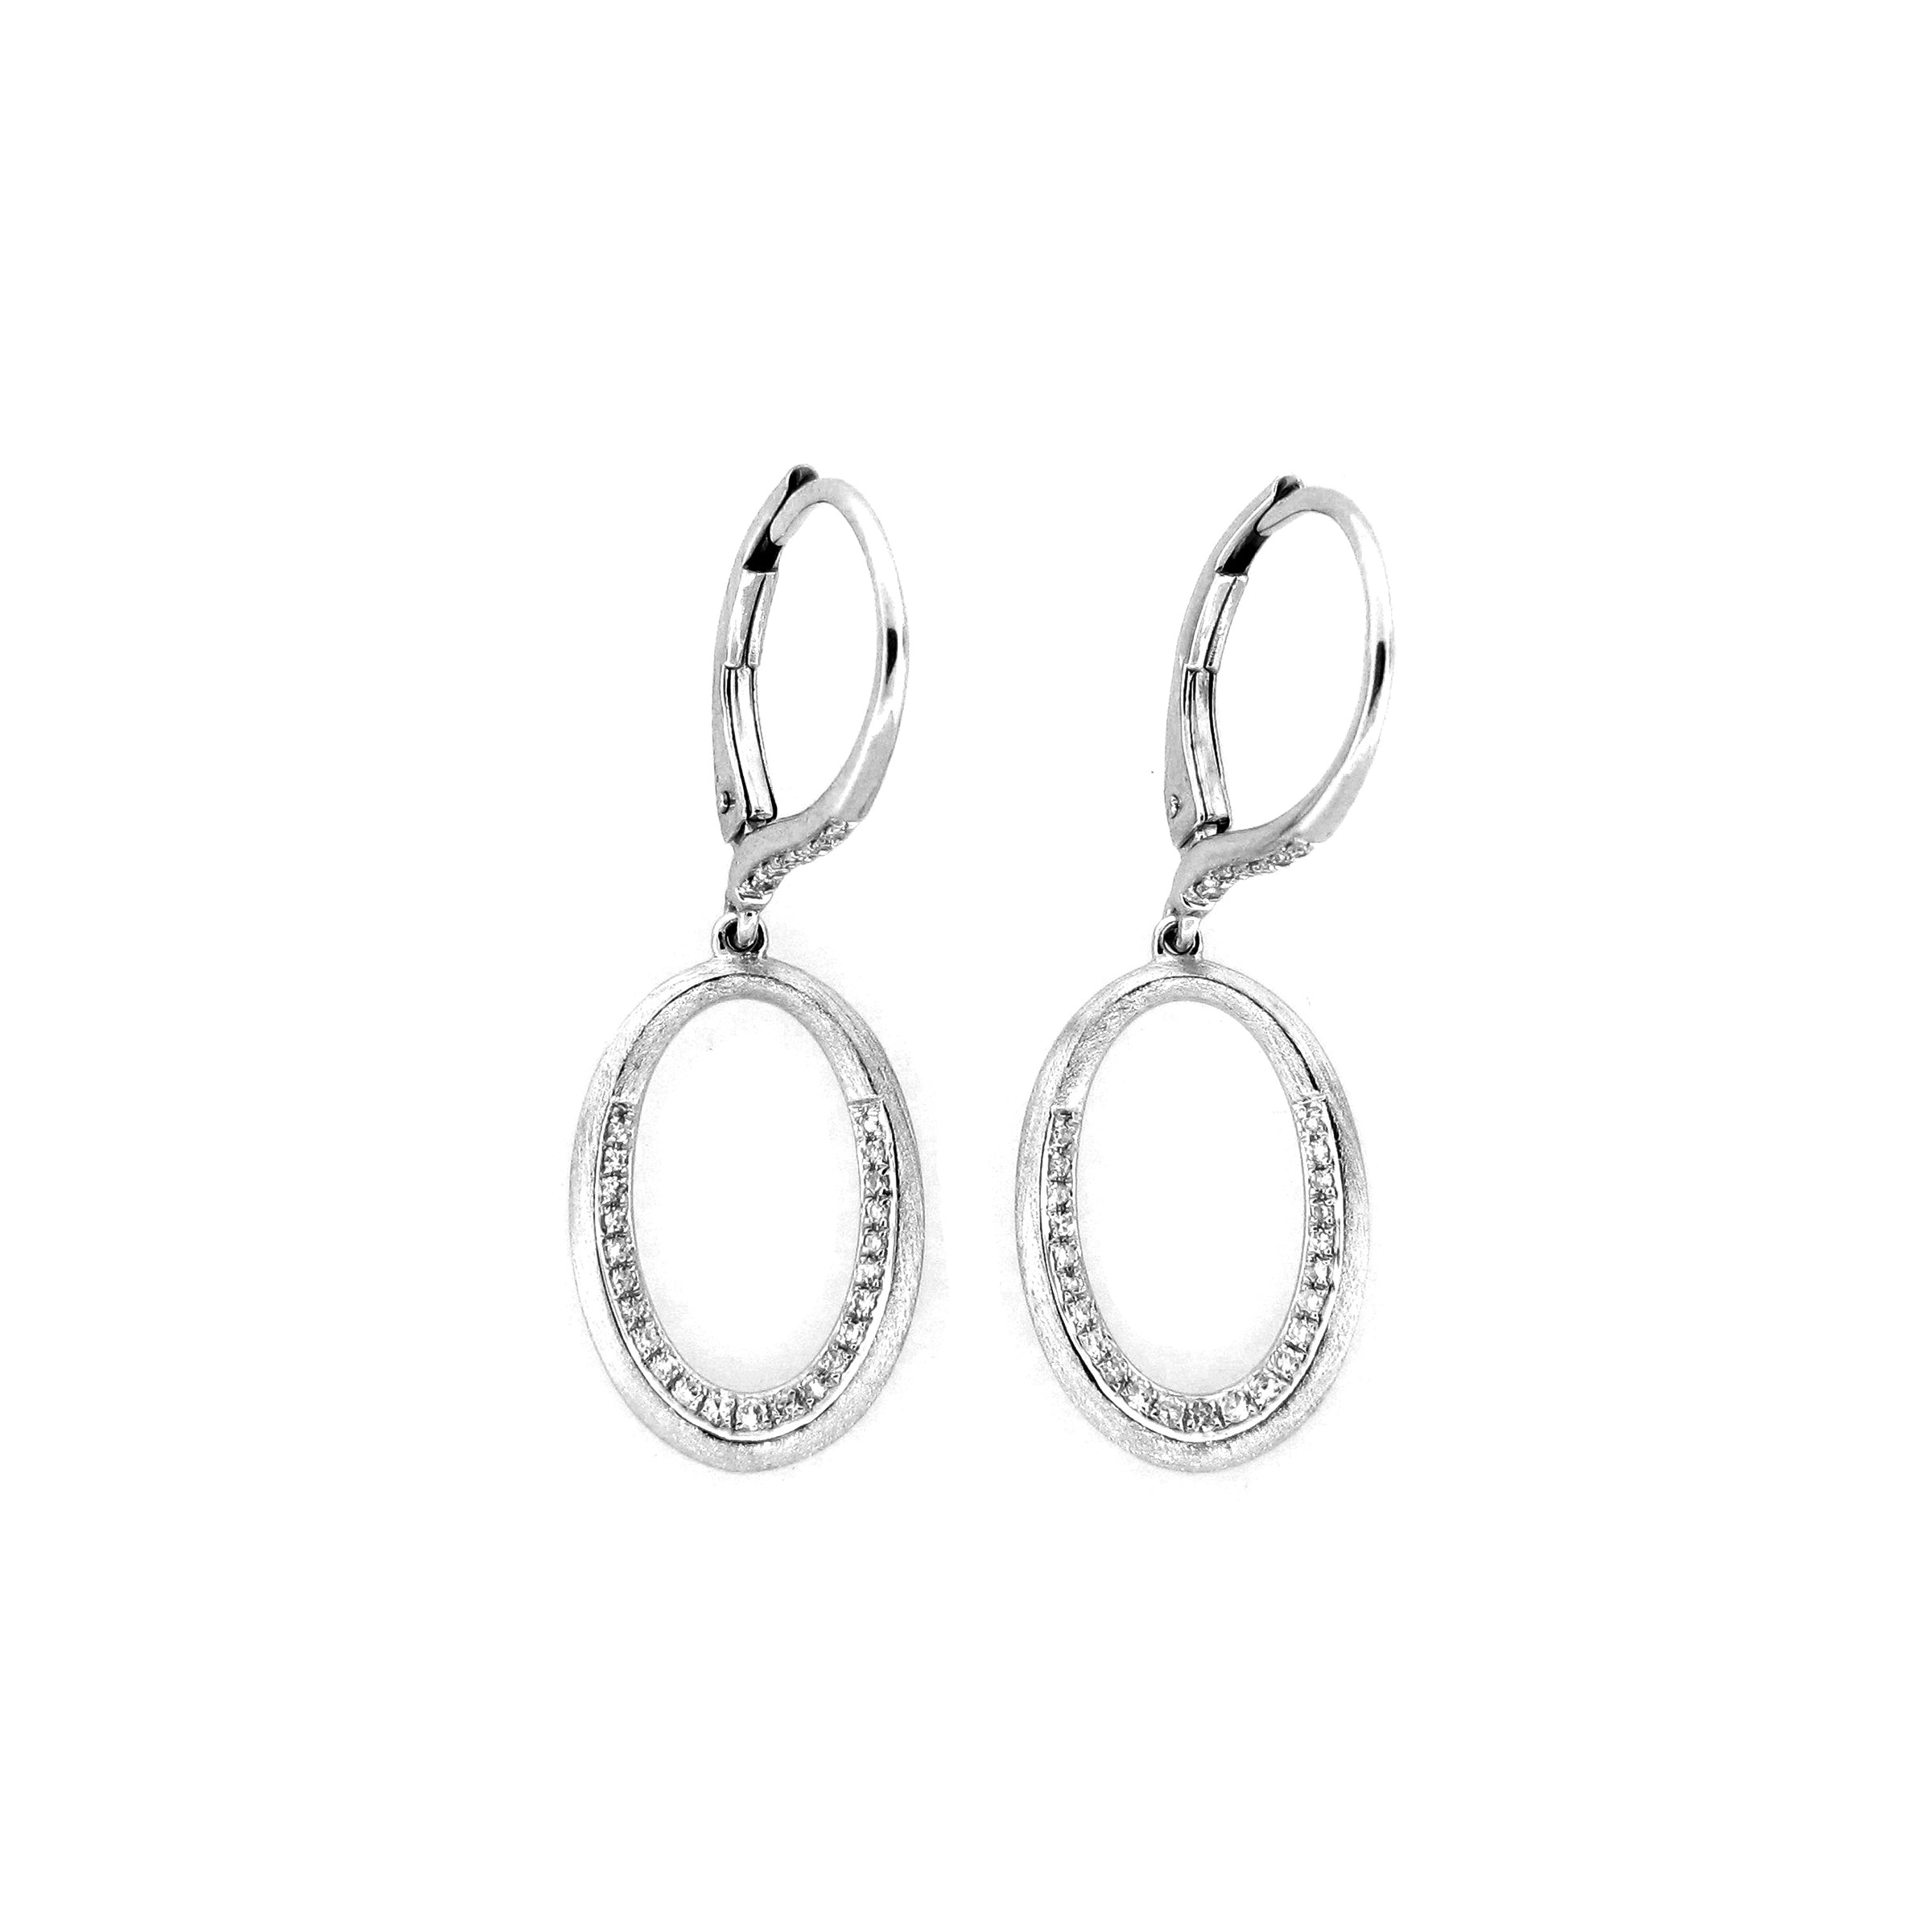 Satin Finish Pavé Diamond Dangle Earrings, 14K White Gold